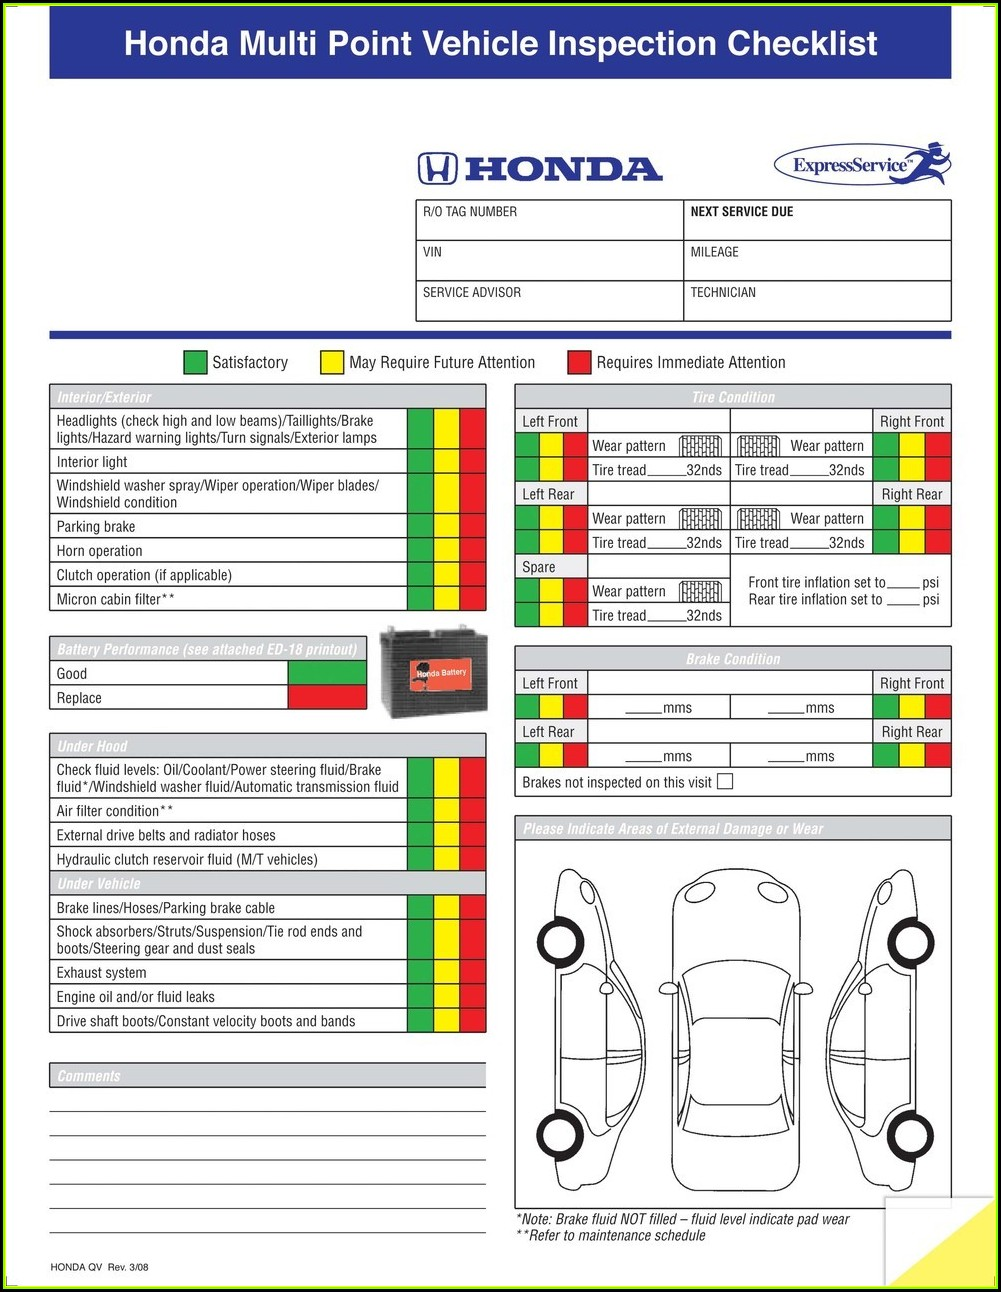 Nissan Multi Point Inspection Form Pdf